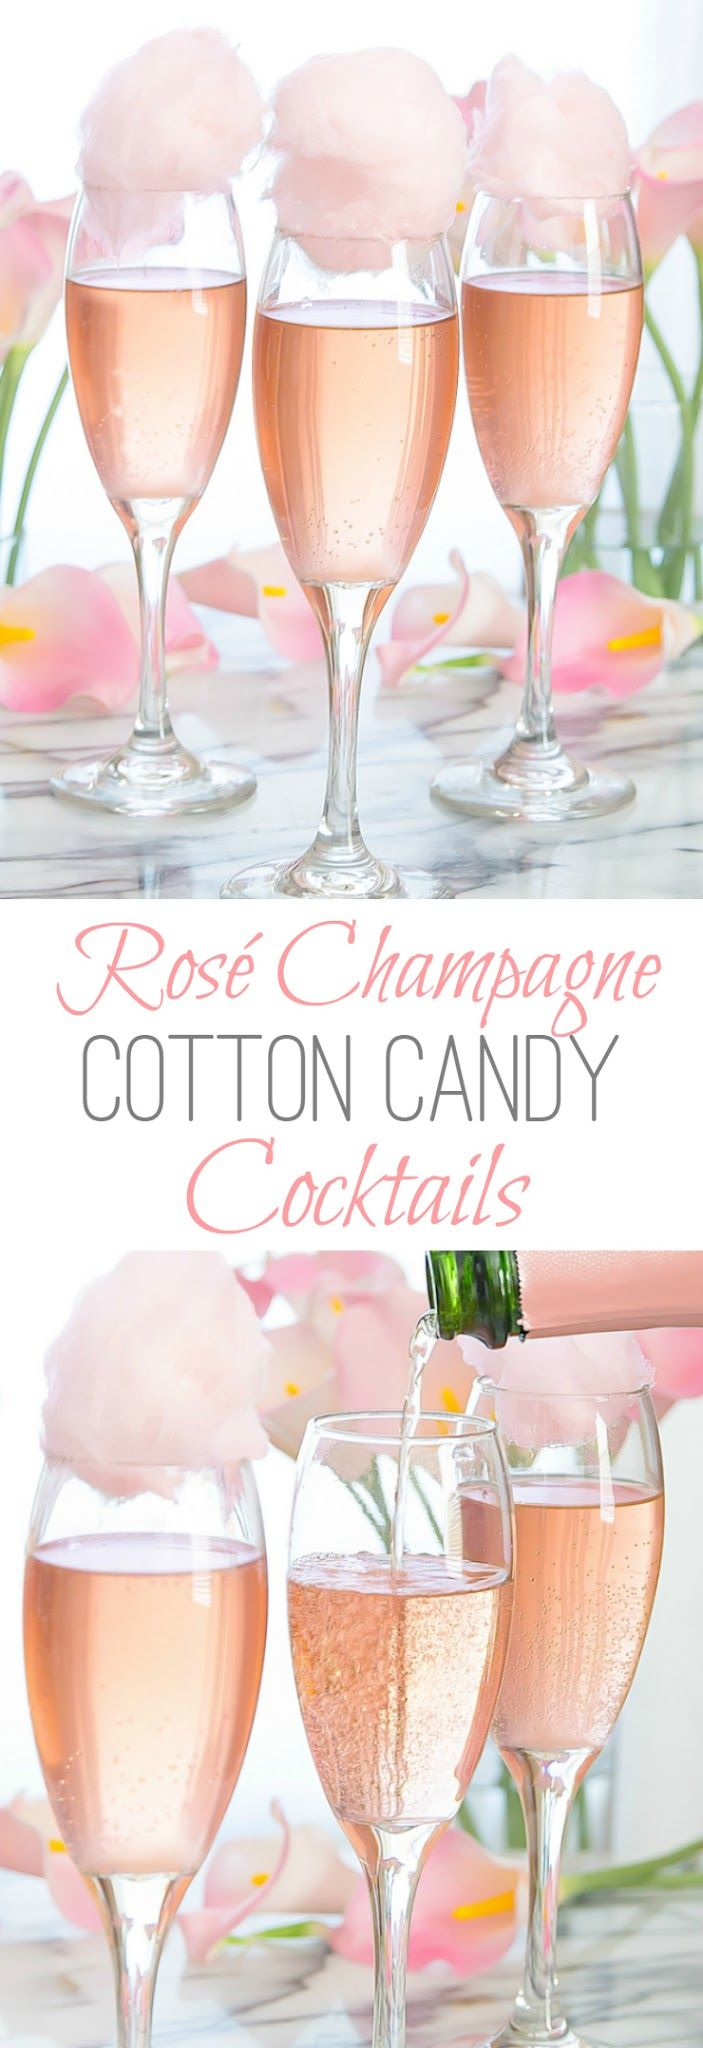 Rosé Champagne Cotton Candy Cocktails. You can make these with different champagnes and cotton candy flavors. It's such an easy and beautiful cocktail to serve at a party or other special event.**